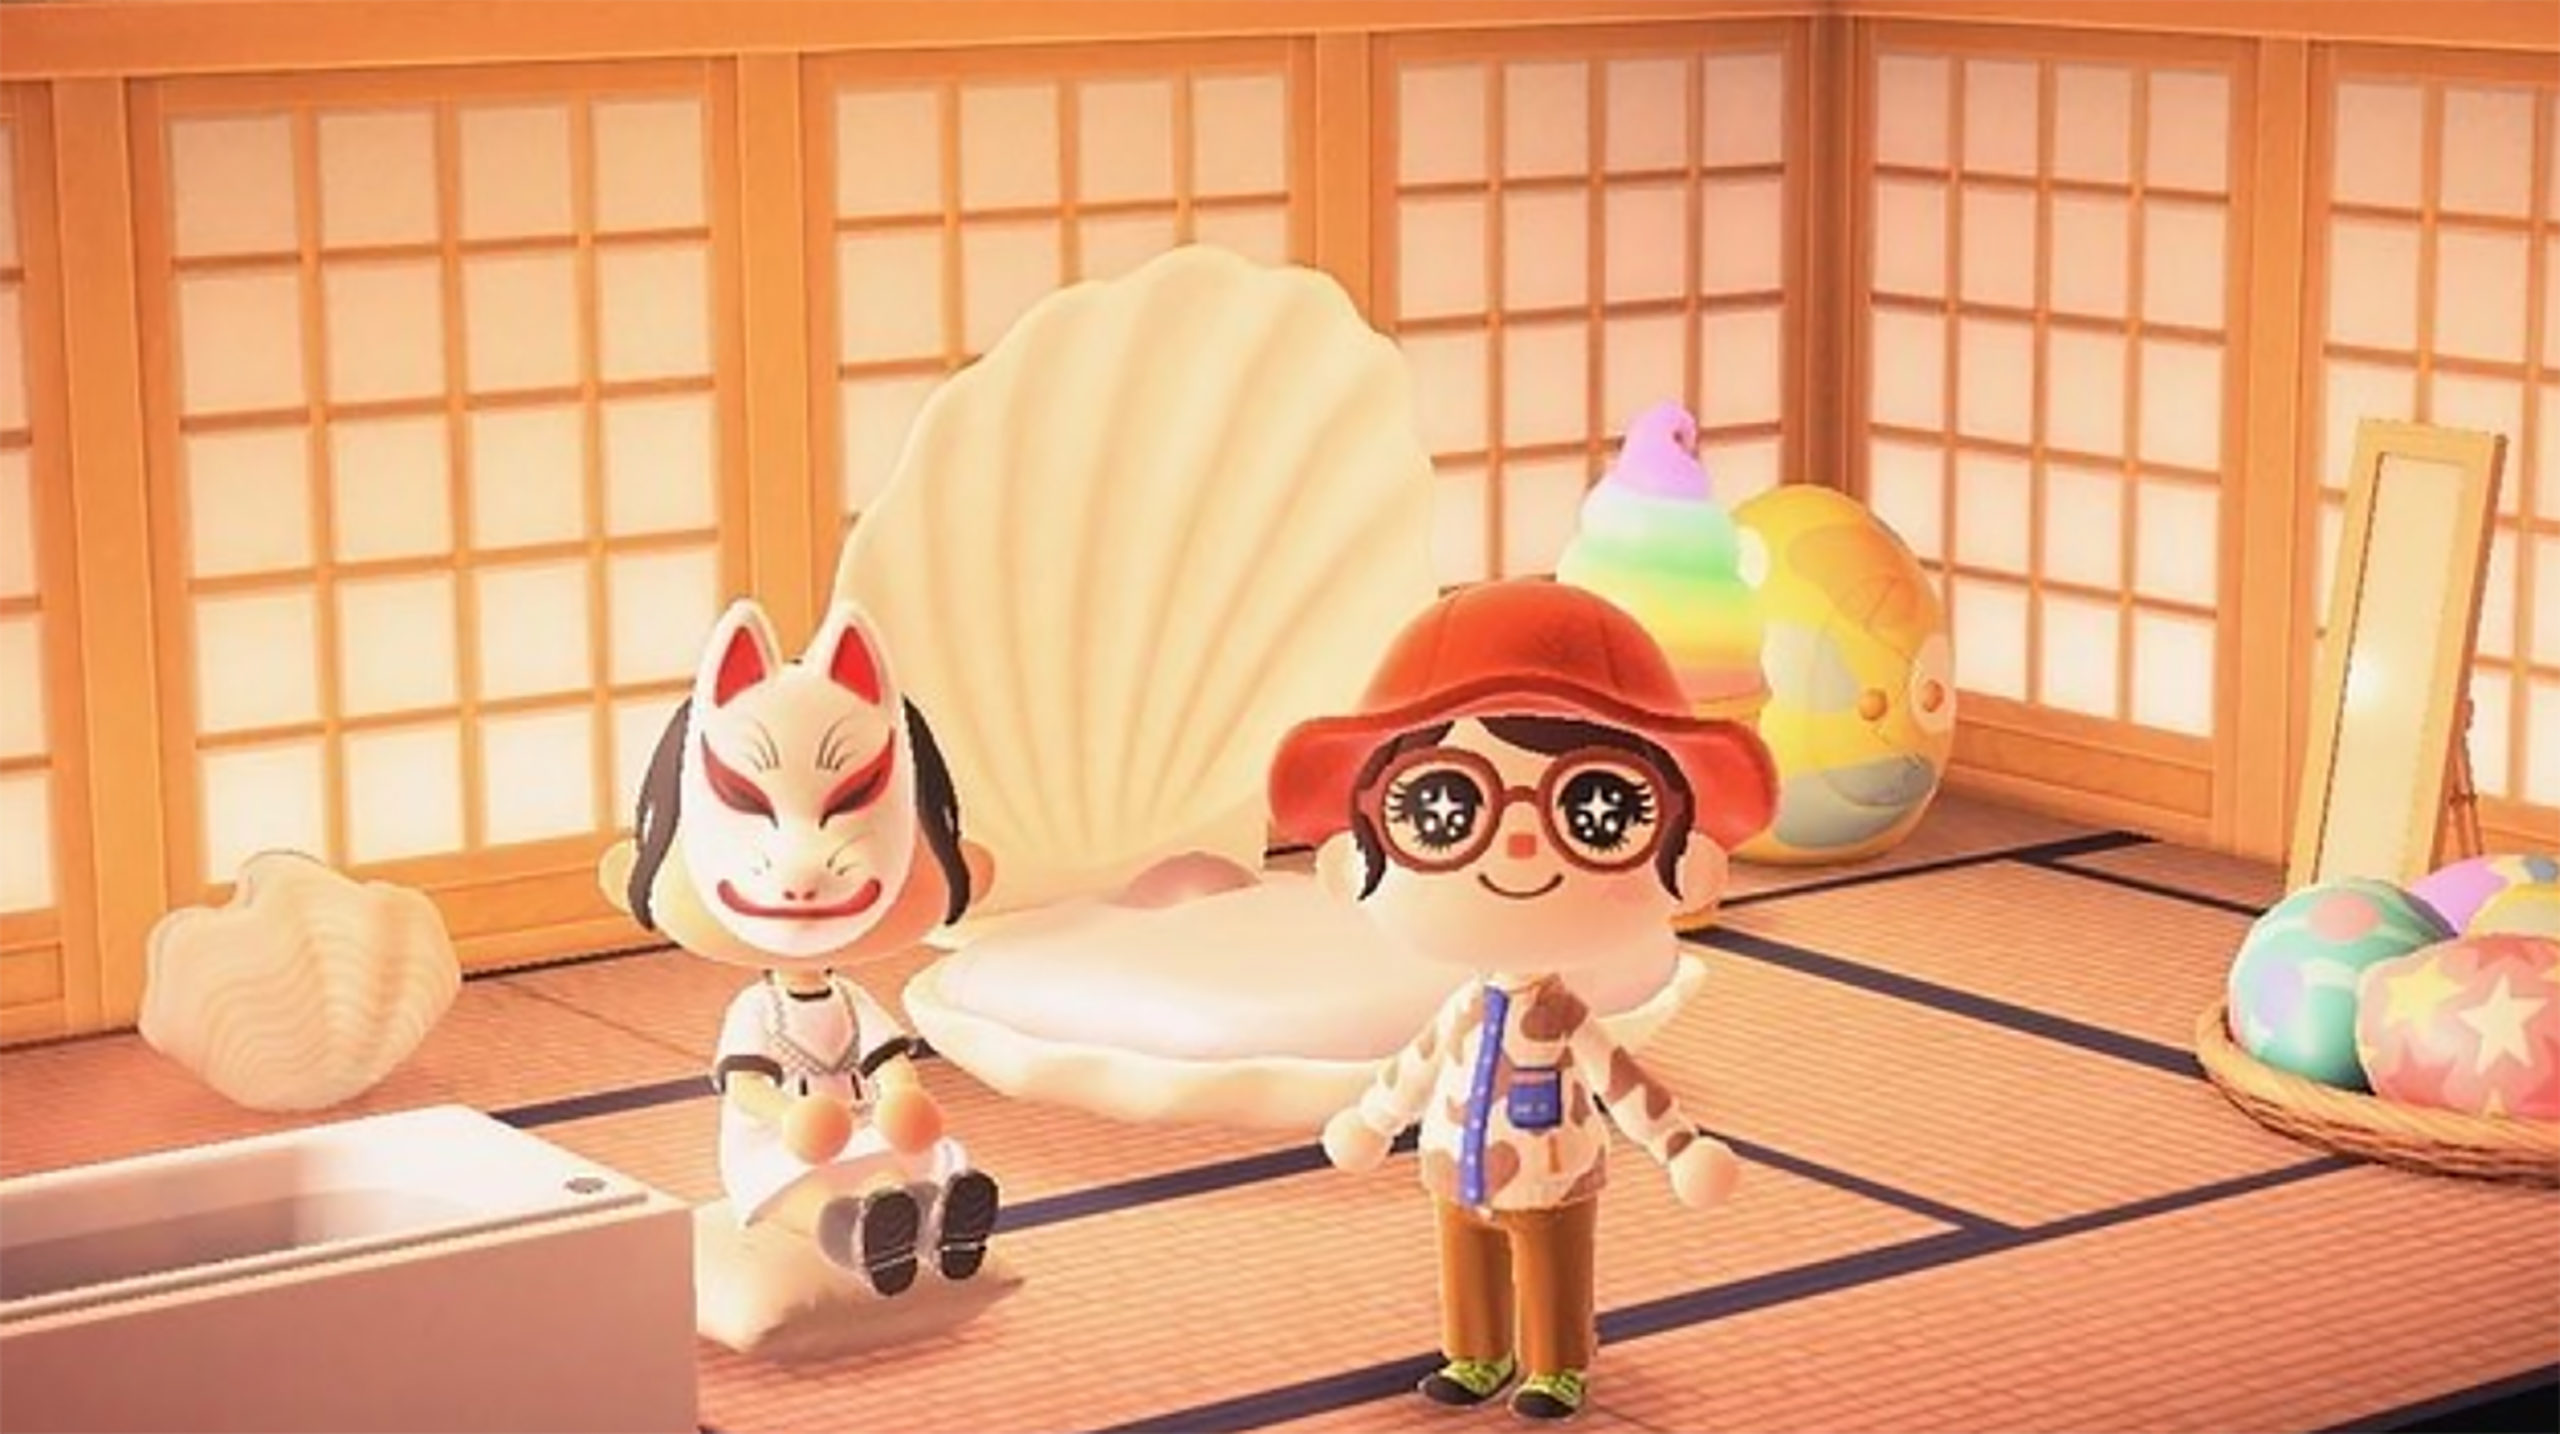 Fashion Designers Are Showing Off Their Latest Styles In Animal Crossing